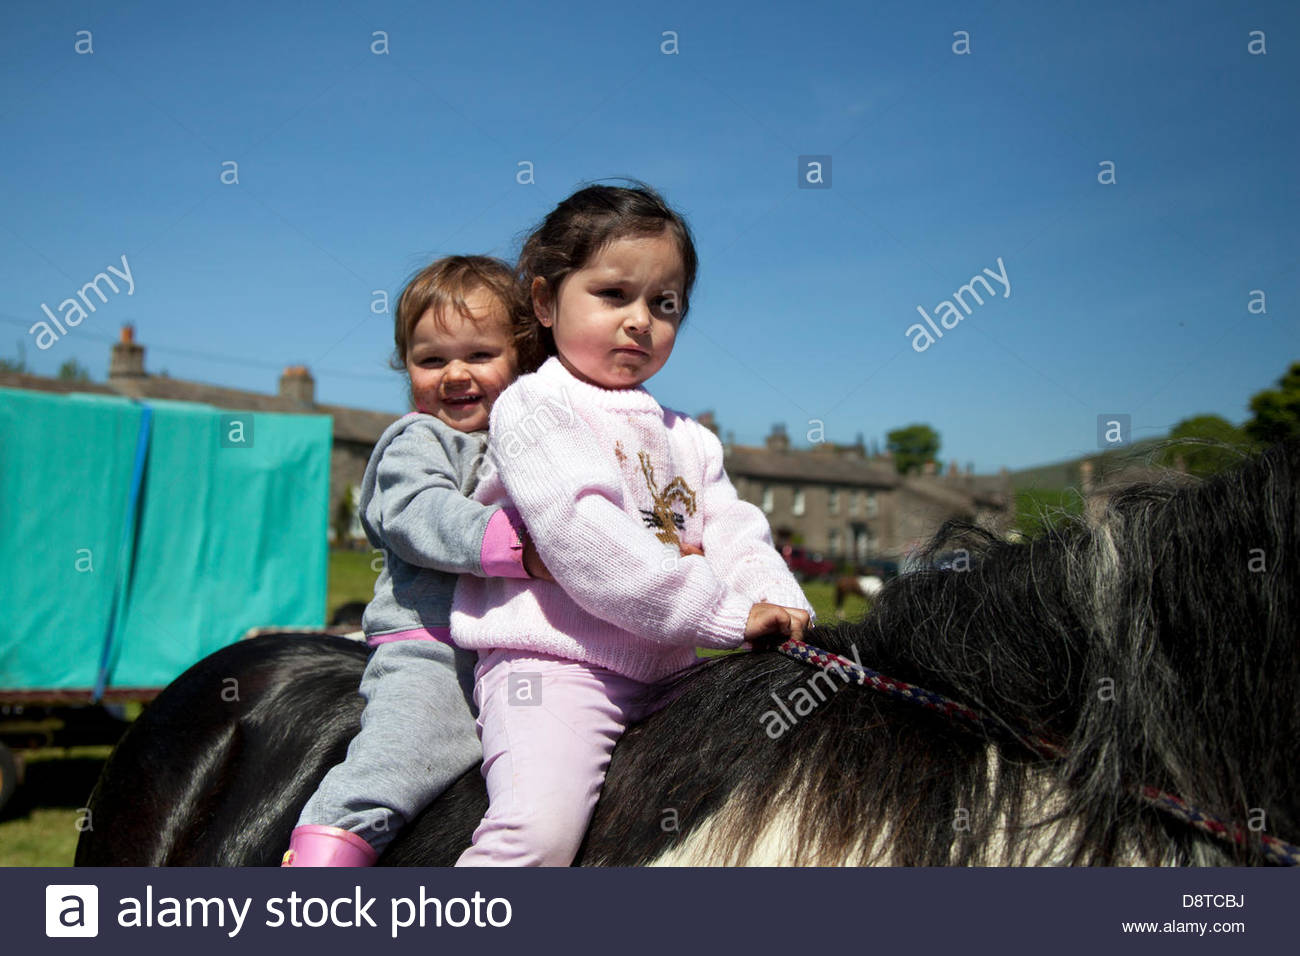 Bainbridge, Richmondshire, North Yorkshire, UK. 4 juin, 2013. Imogen & Lily Corrie équitation un cheval Photo Stock